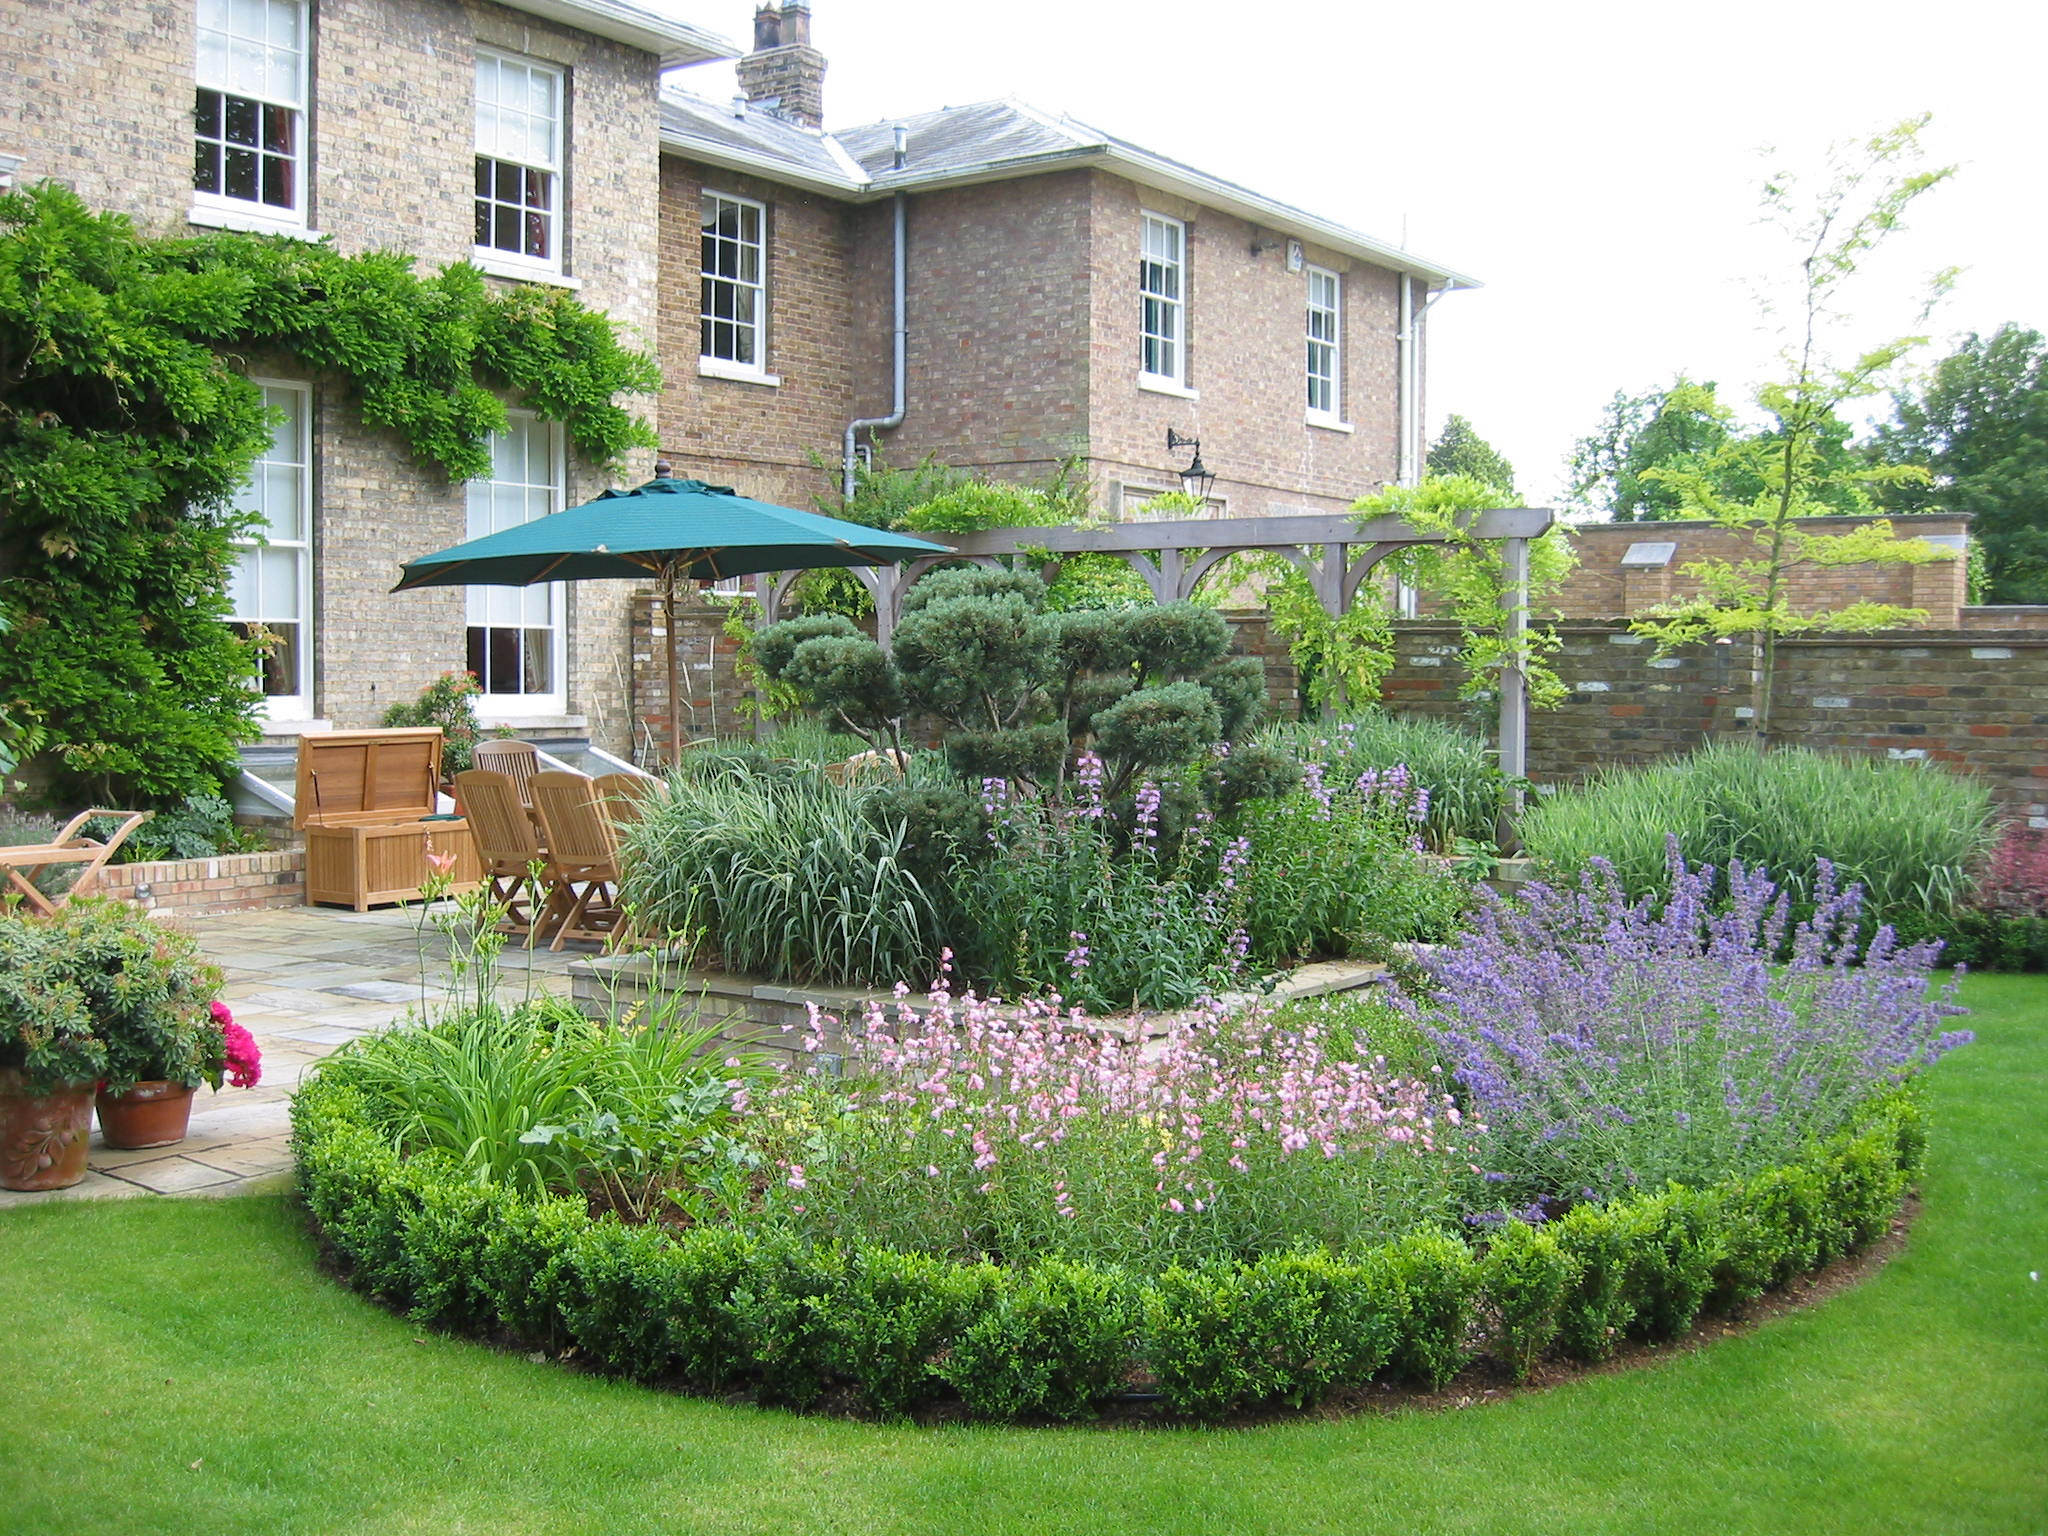 Best landscape designs to have a beautiful garden cool for Garden building design ideas